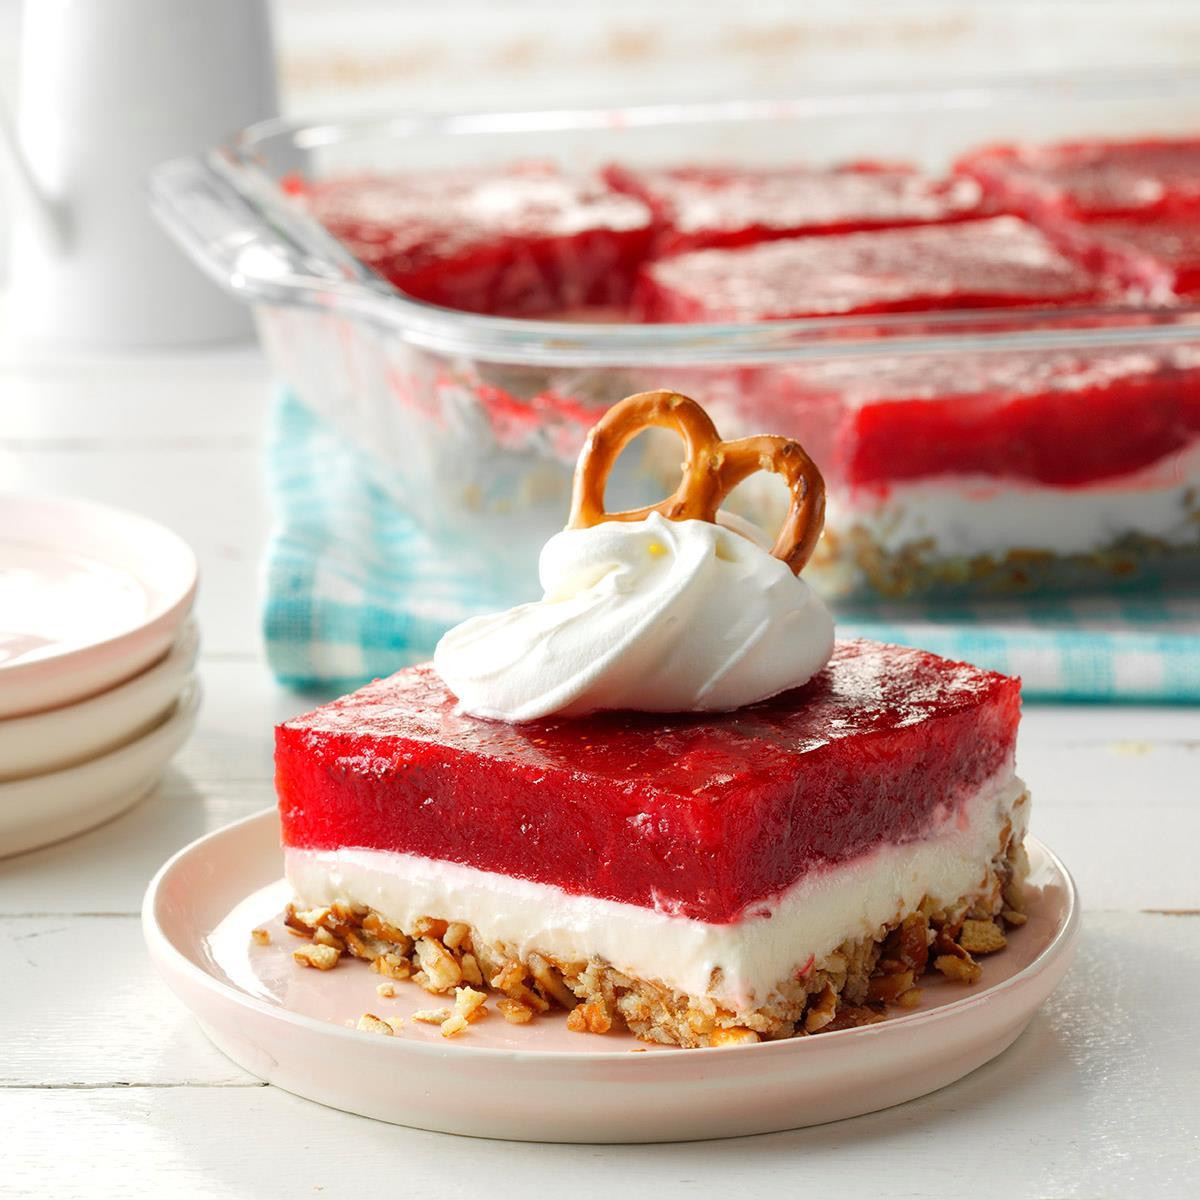 Taste Of Home Strawberry Pretzel Dessert  Strawberry Pretzel Dessert Recipe